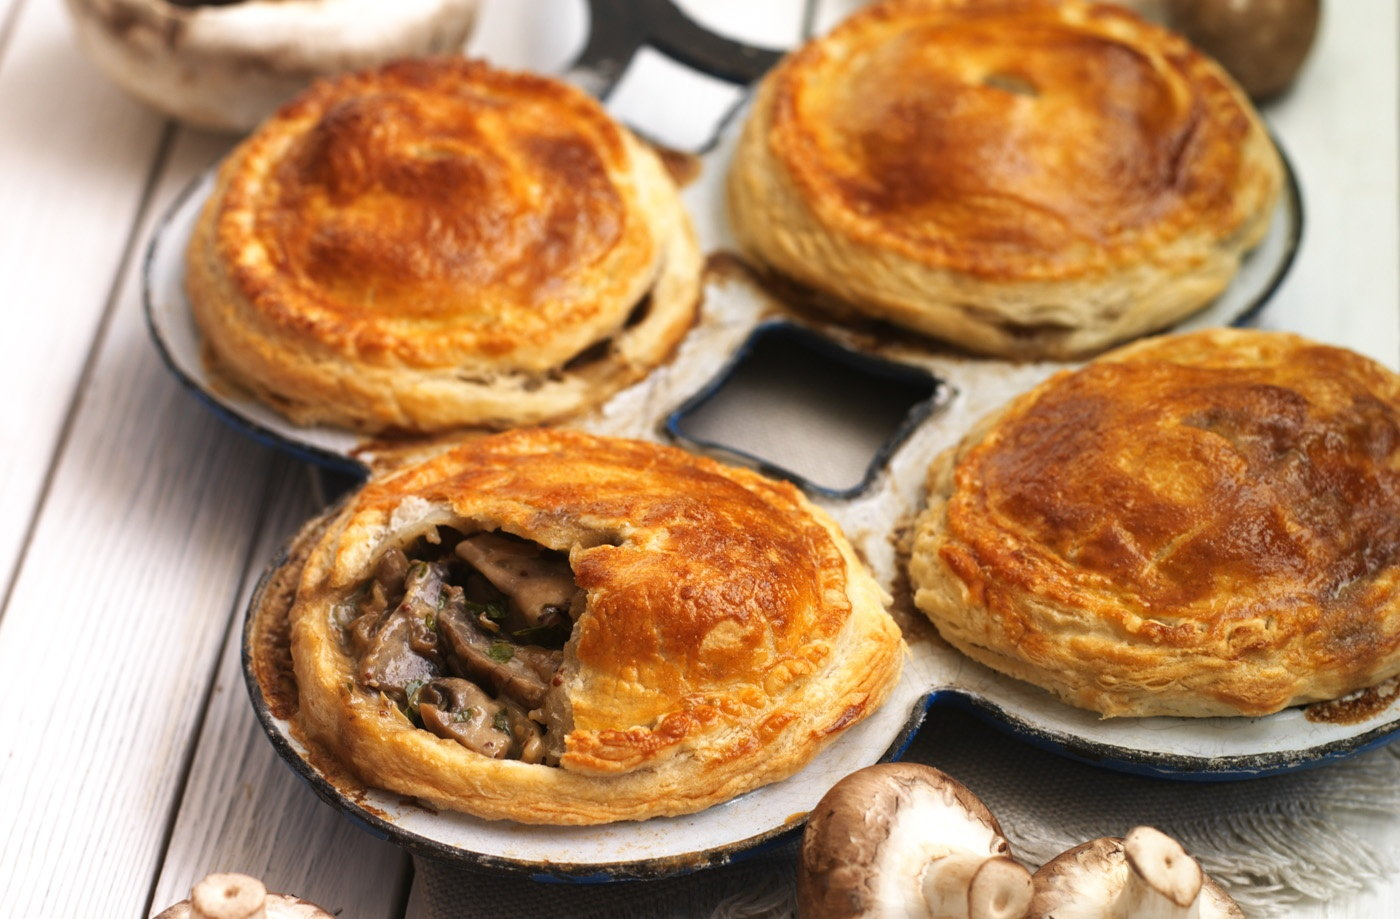 steak and mushroom pie with puff pastry